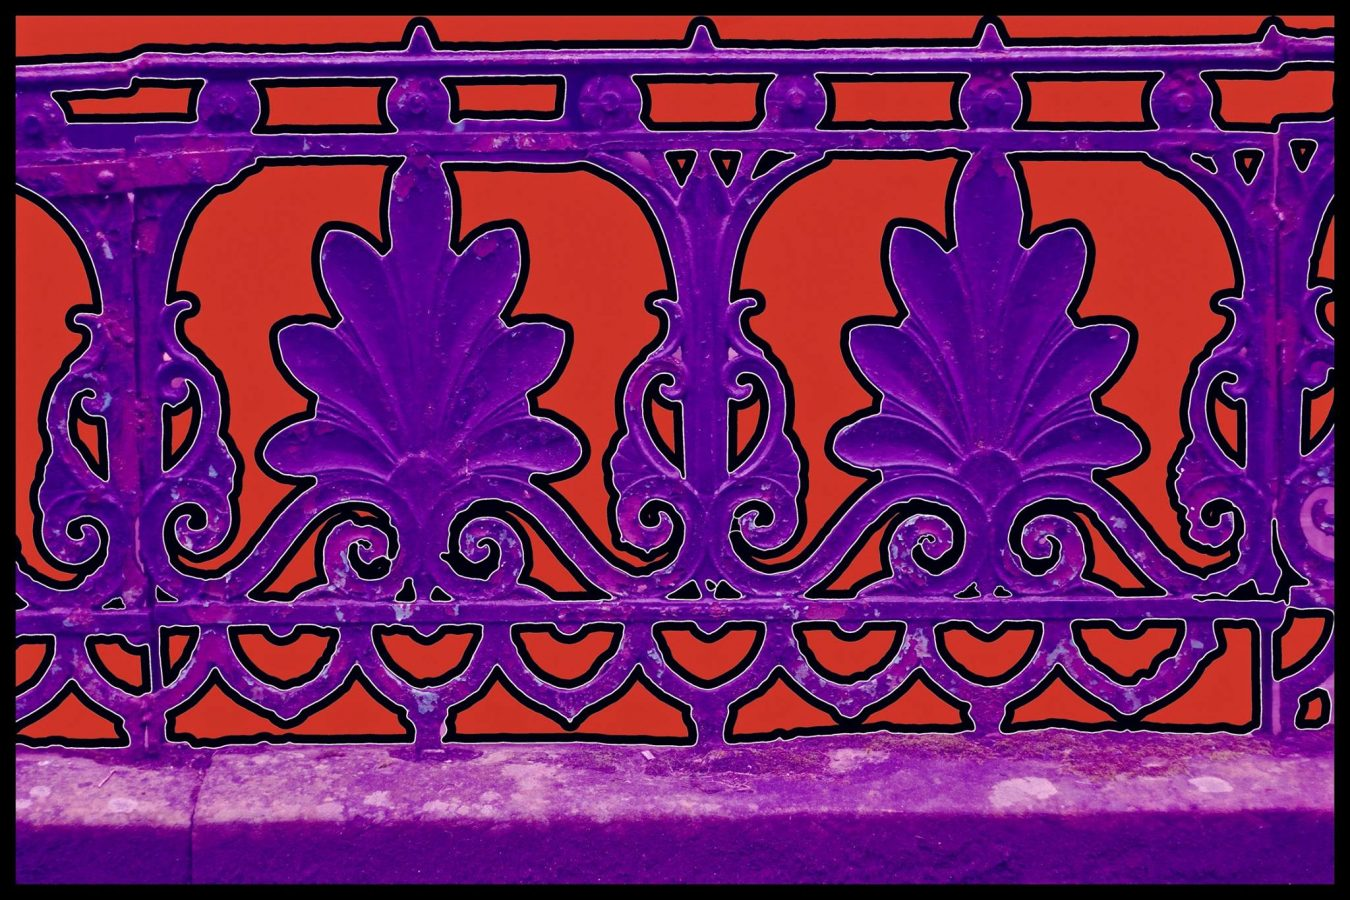 Abstract pattern developed from cast iron railings